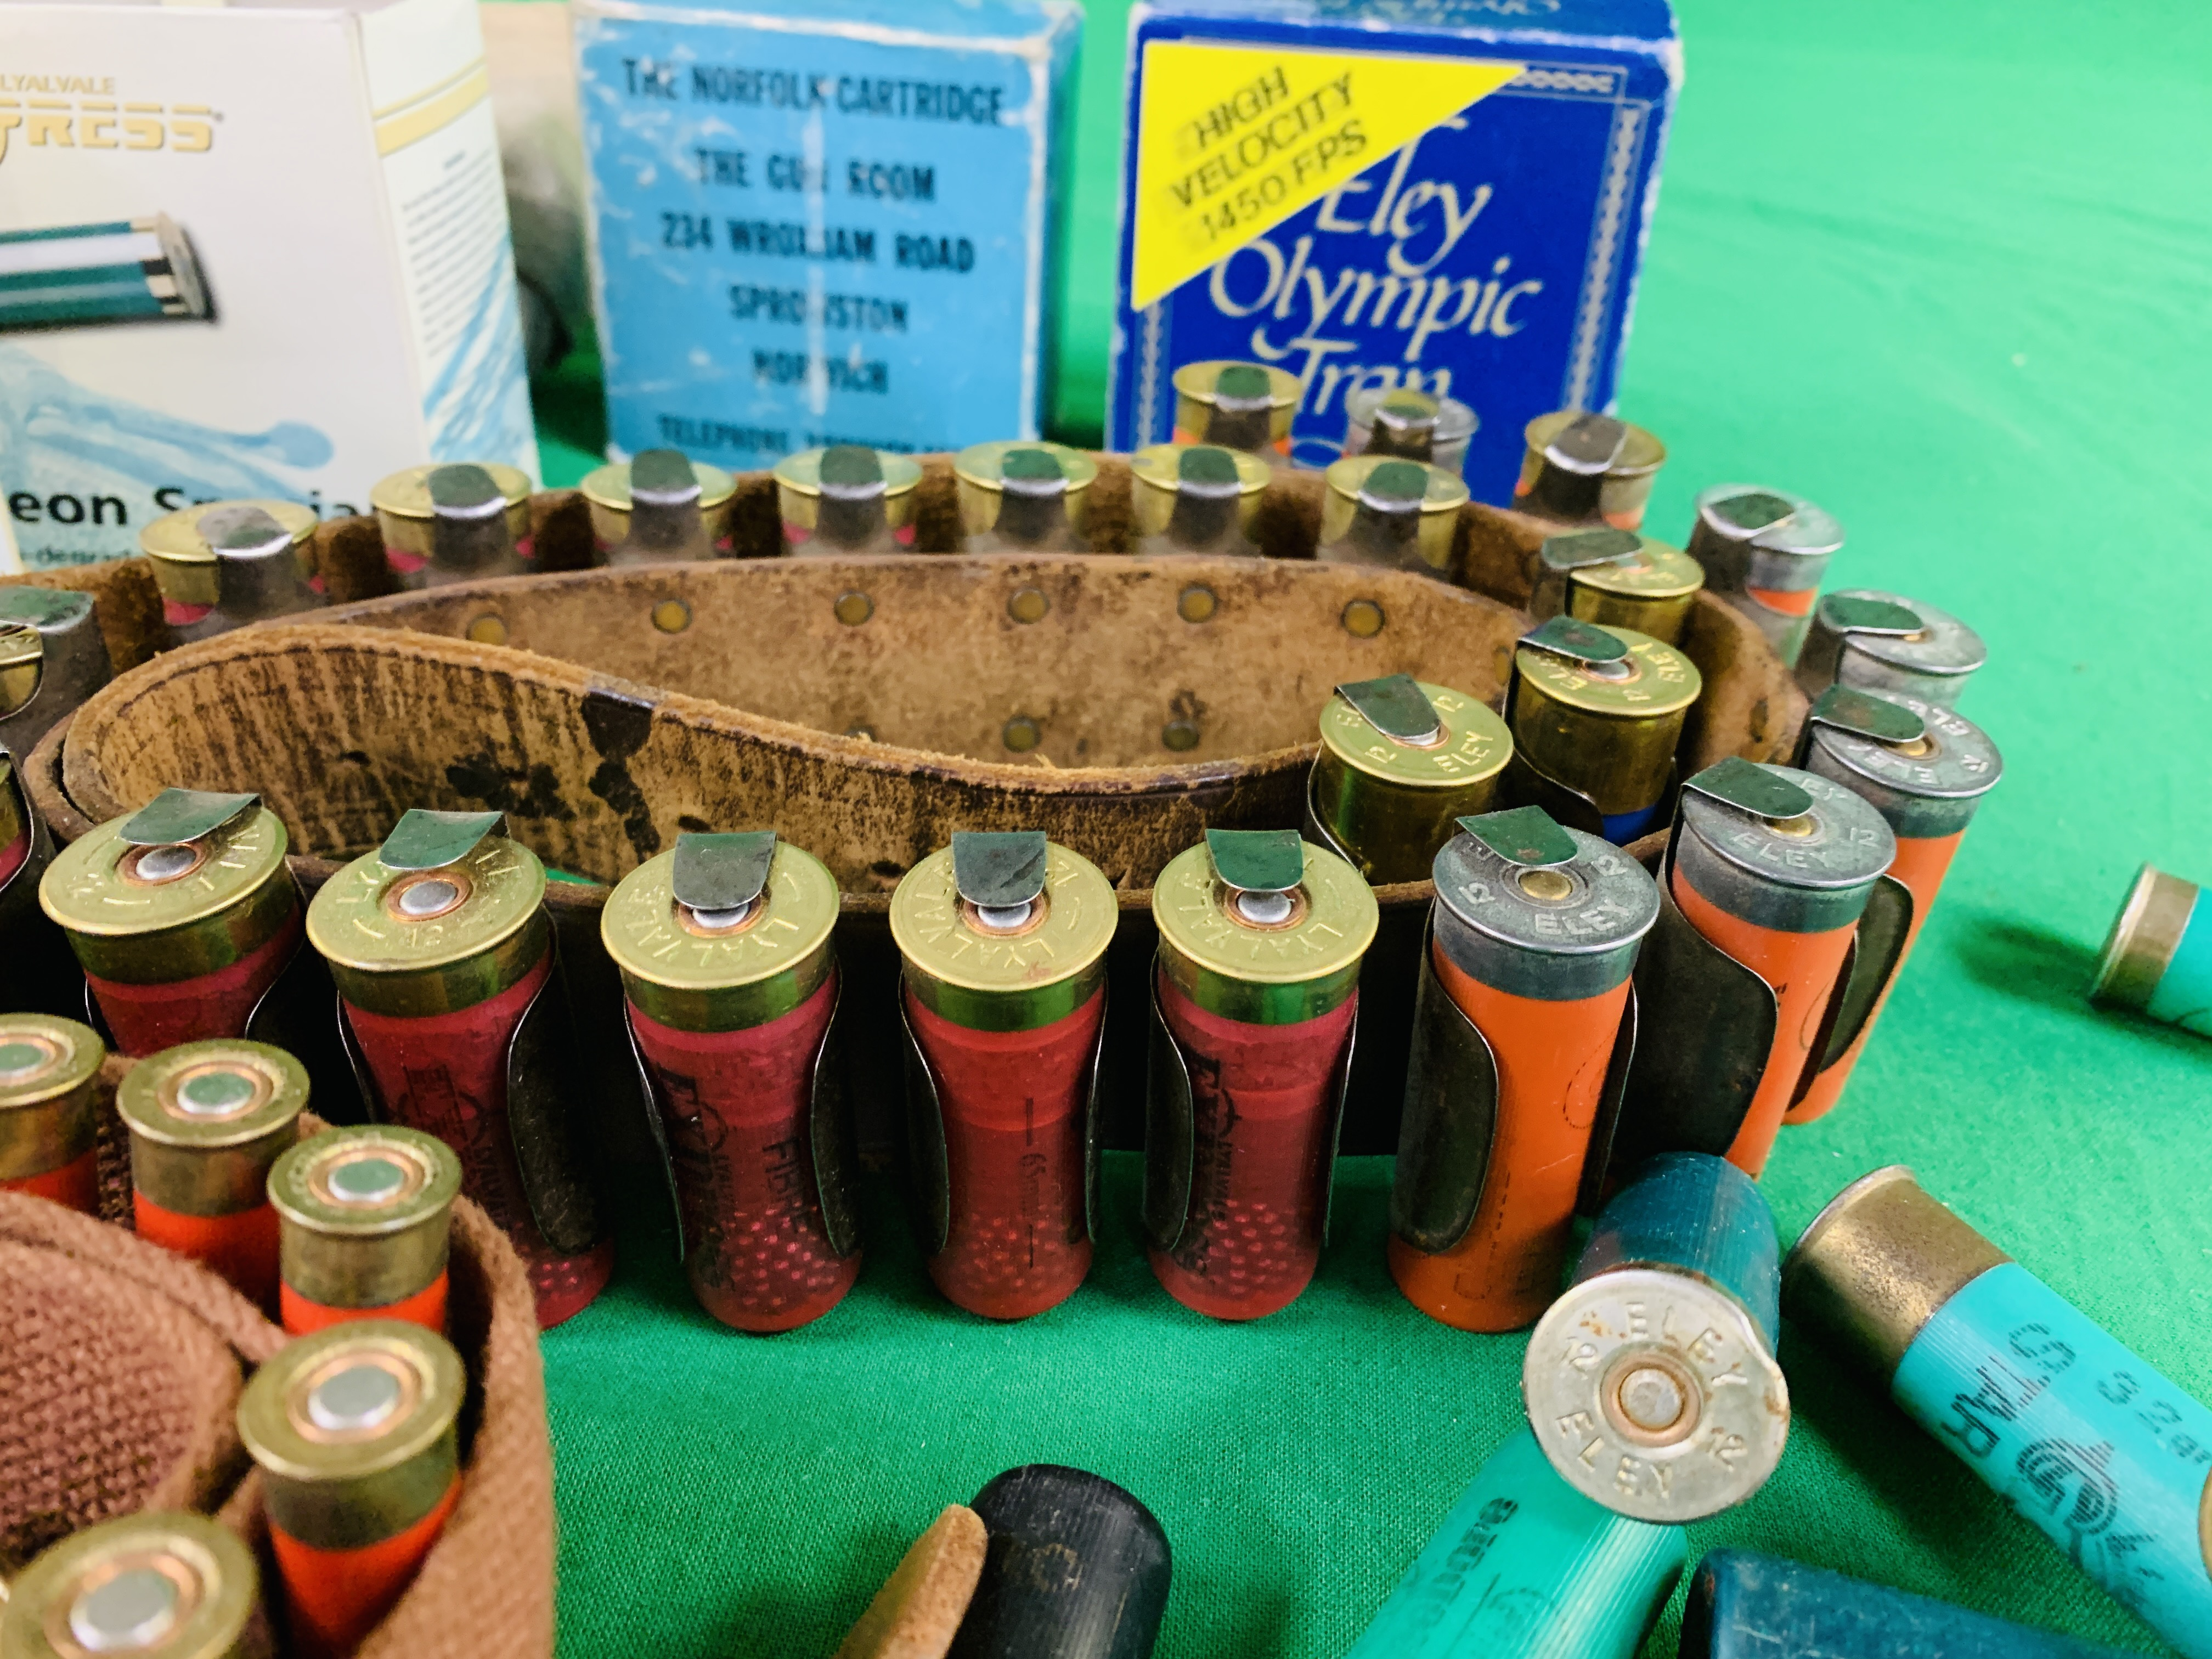 A COLLECTION OF SHOTGUN AMMUNITION TO INCLUDE 12G, .22 BIRD SHOT, . - Image 3 of 6